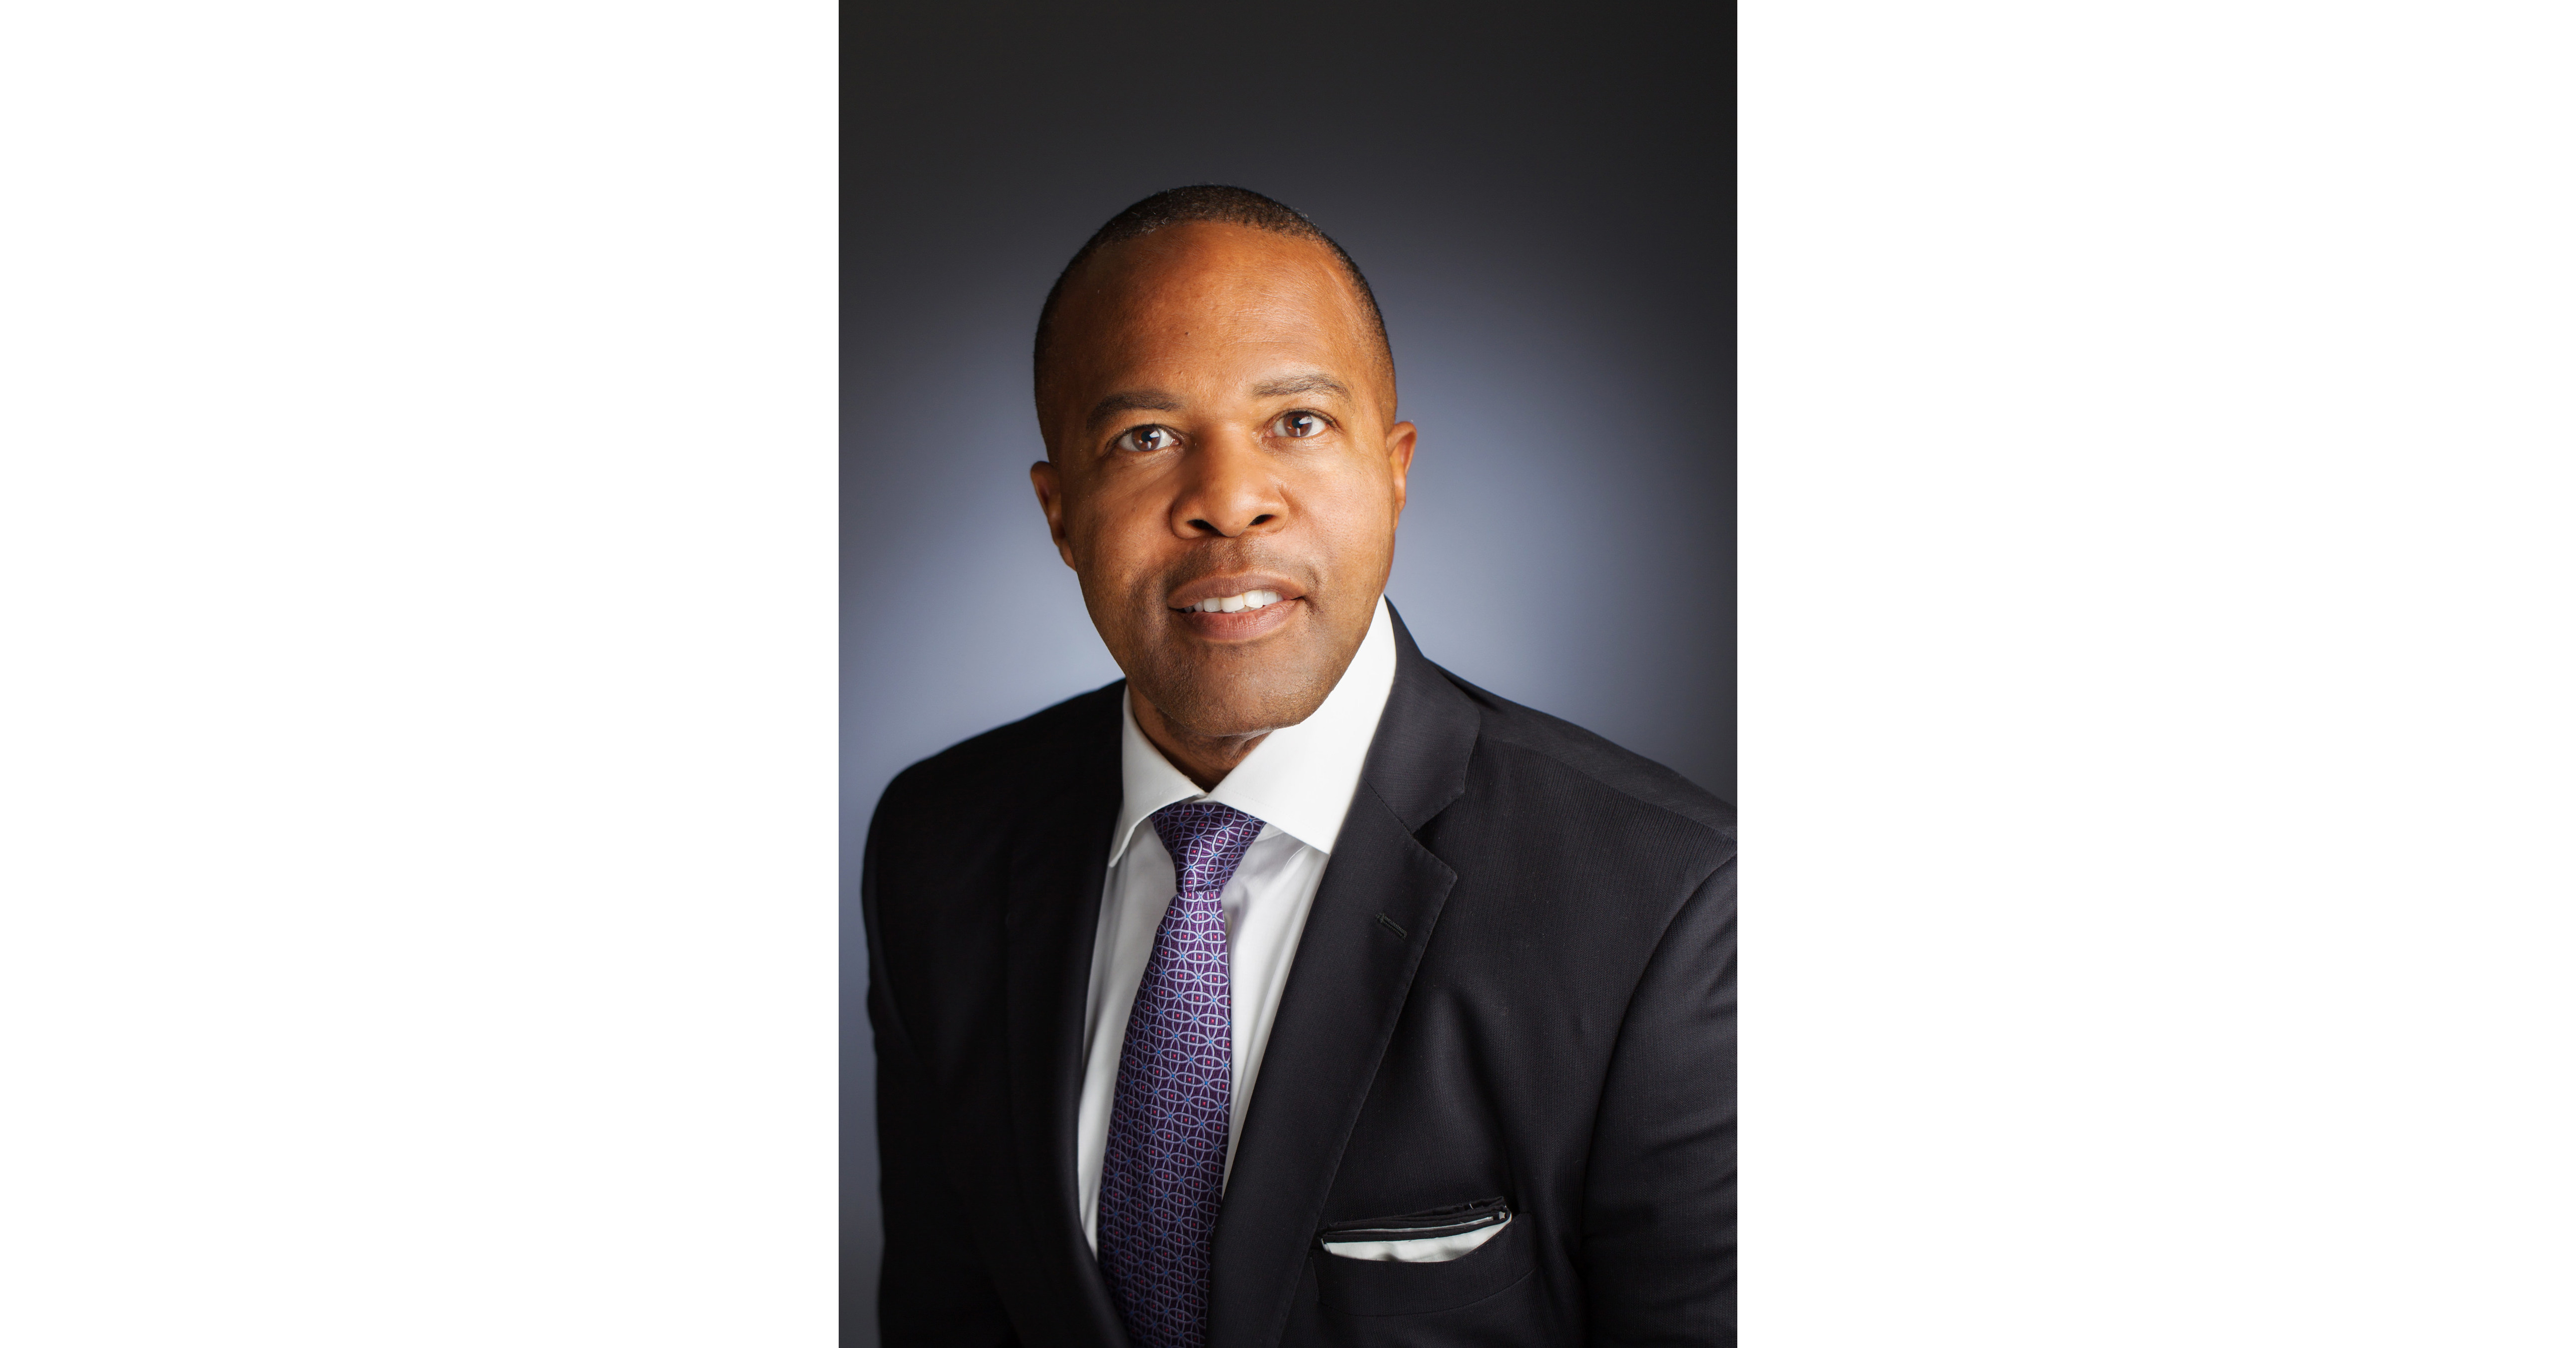 Union bank appoints anthony white south bay regional manager for commercial banking